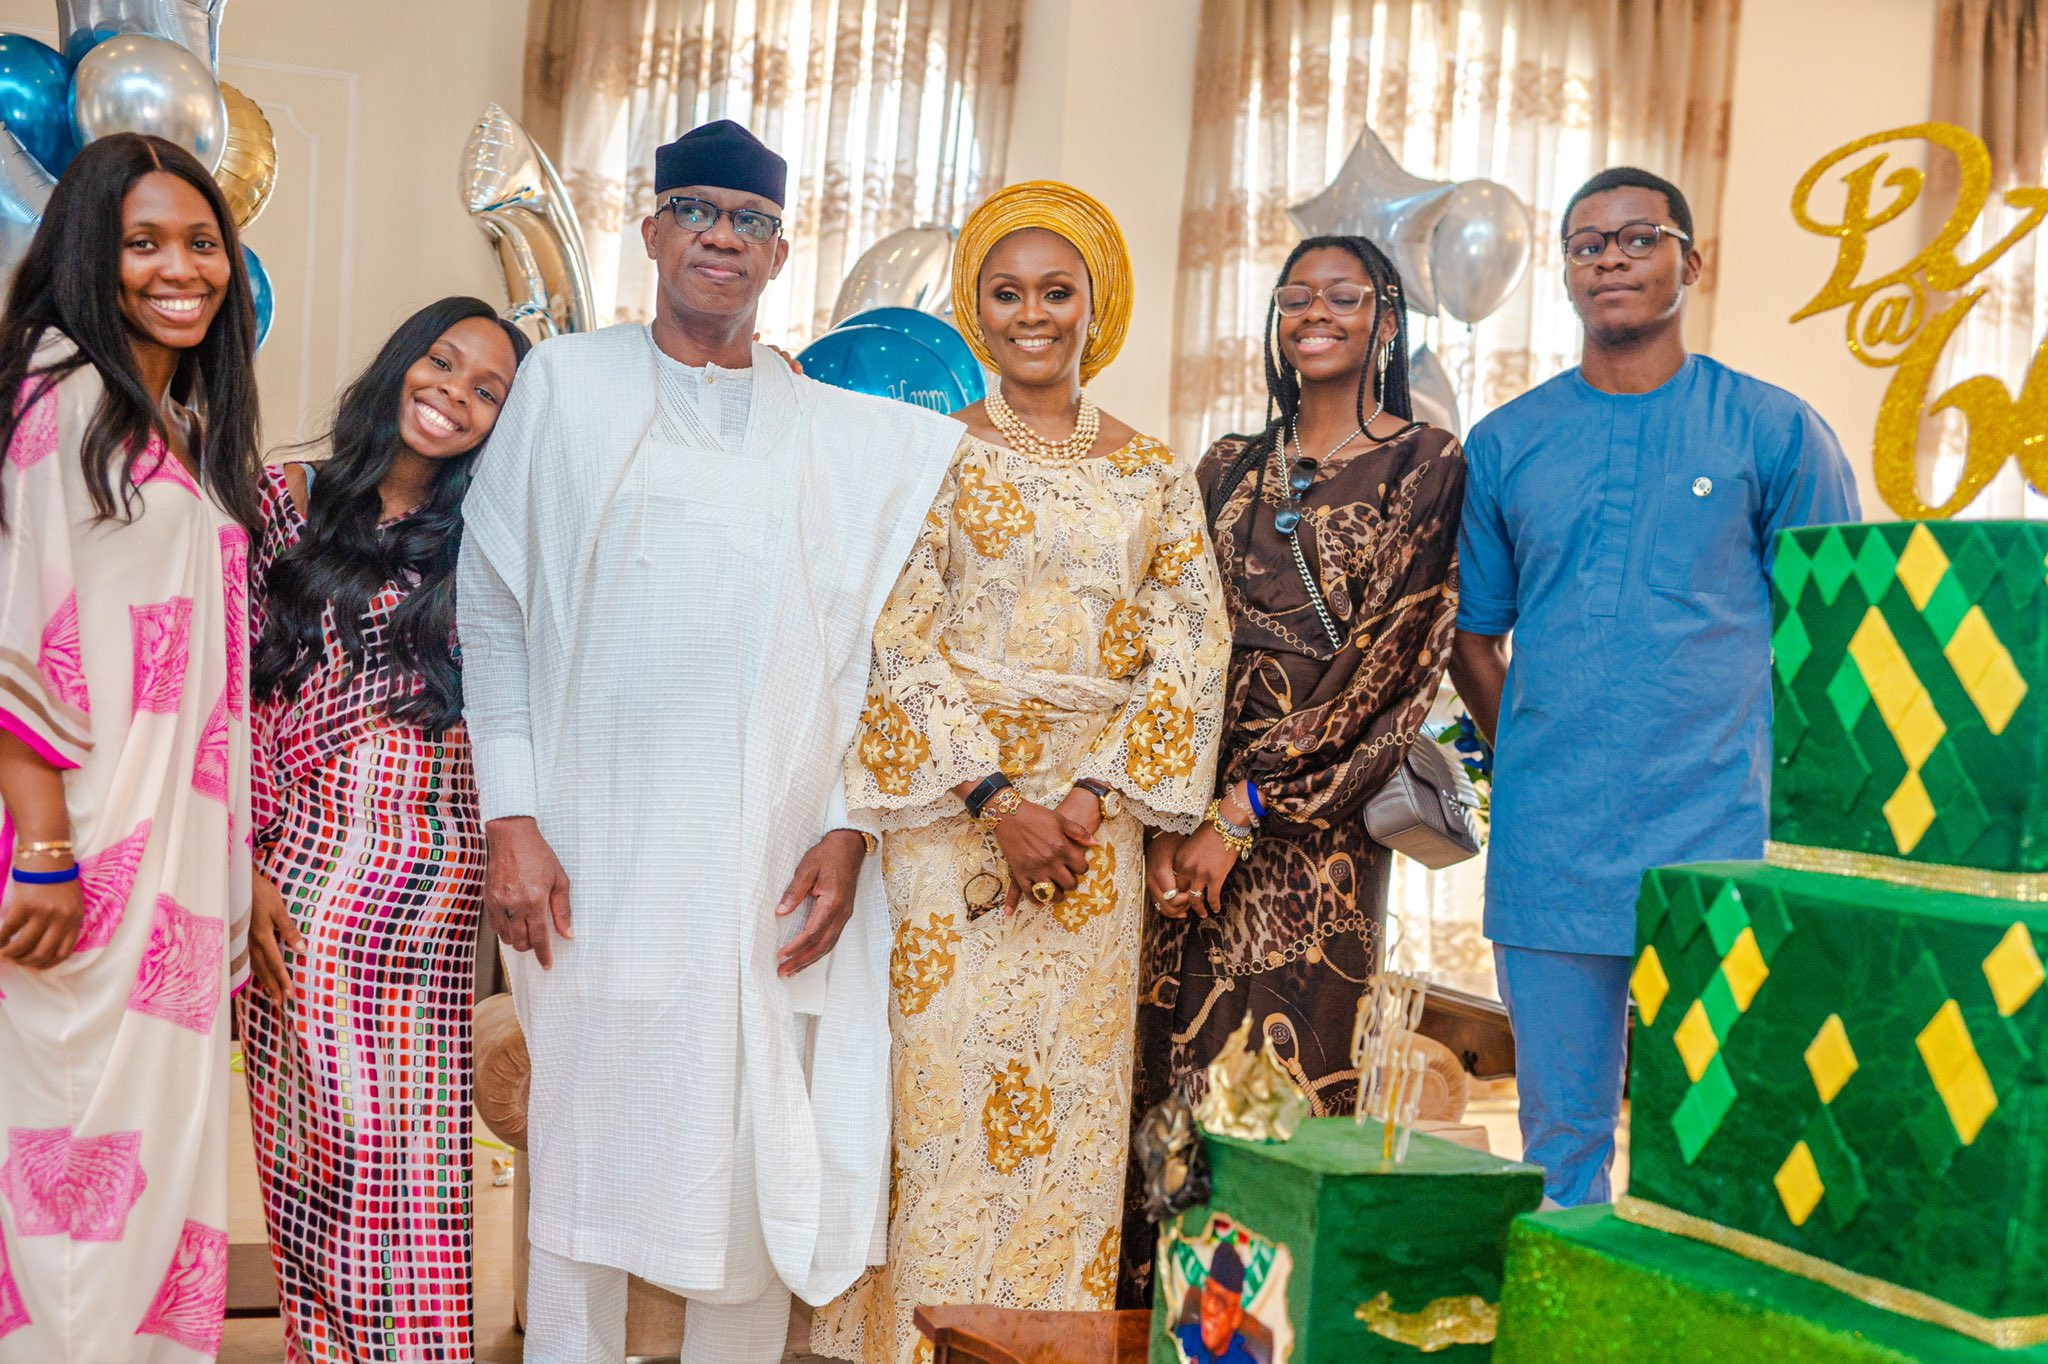 VP Yemi Osinbajo, Dangote, Pastor Adeboye, others attend virtual 60th birthday thanksgiving service of Ogun state governor, Dapo Abiodun (photos)